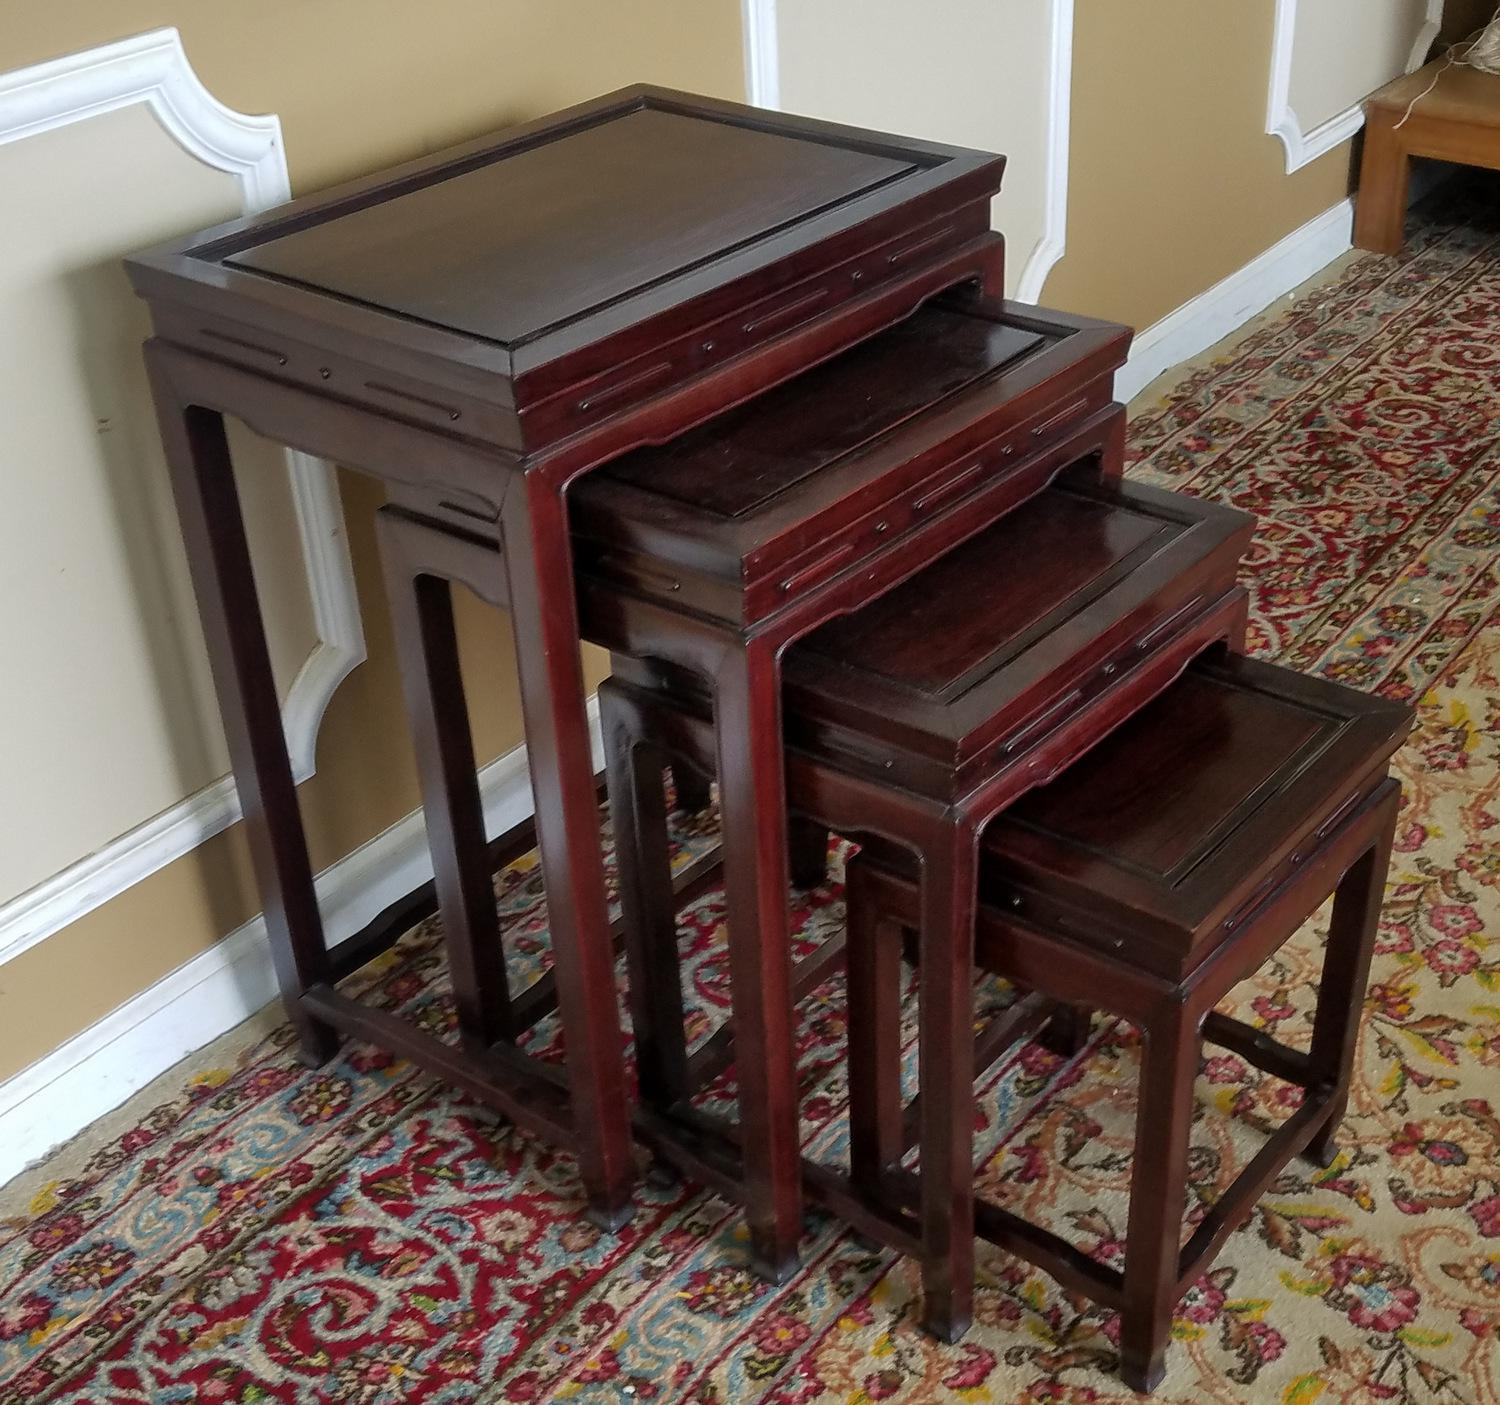 Description: This Is A Set Of 4 Late 20th Century Asian Teak Chinese Style  Stacking